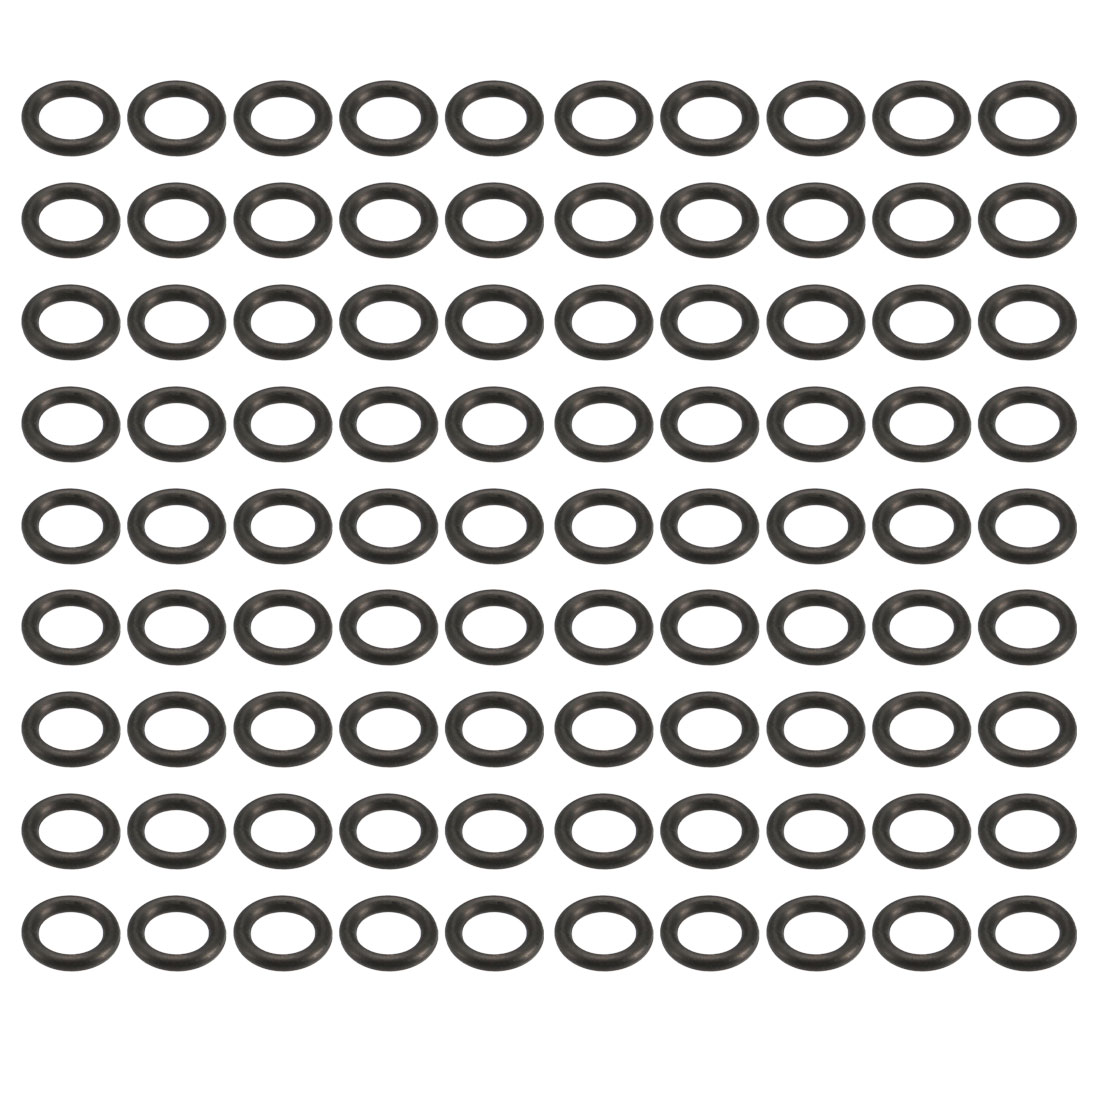 100pcs Black 2.9mm Outer Dia 0.8mm Thickness Sealing Ring O-shape Rubber Grommet